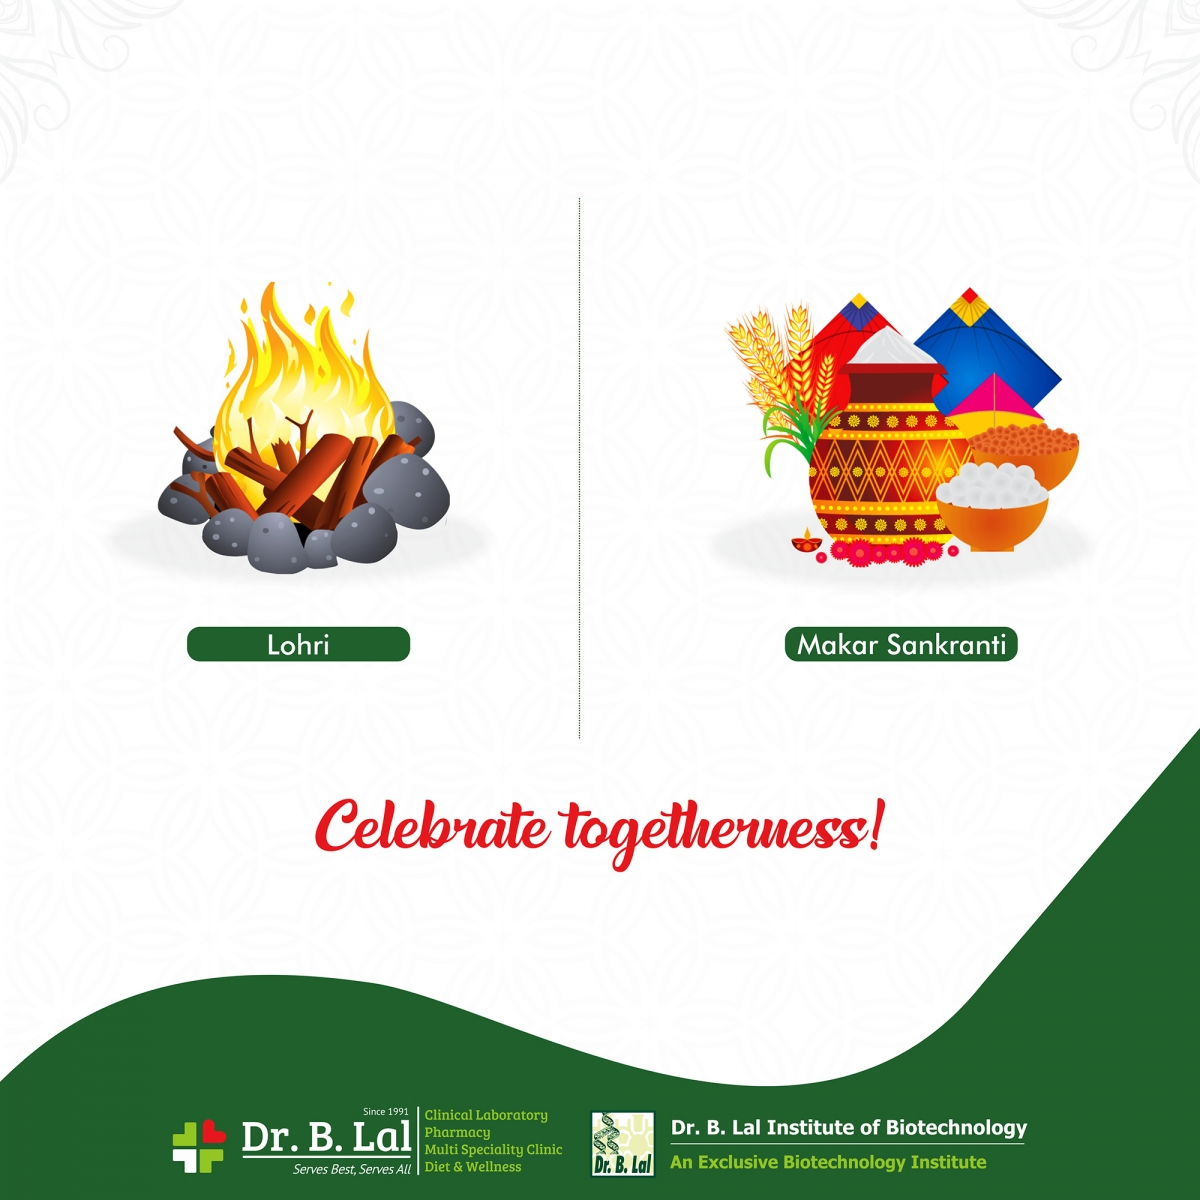 Happy Lohri and Makar Sankranti